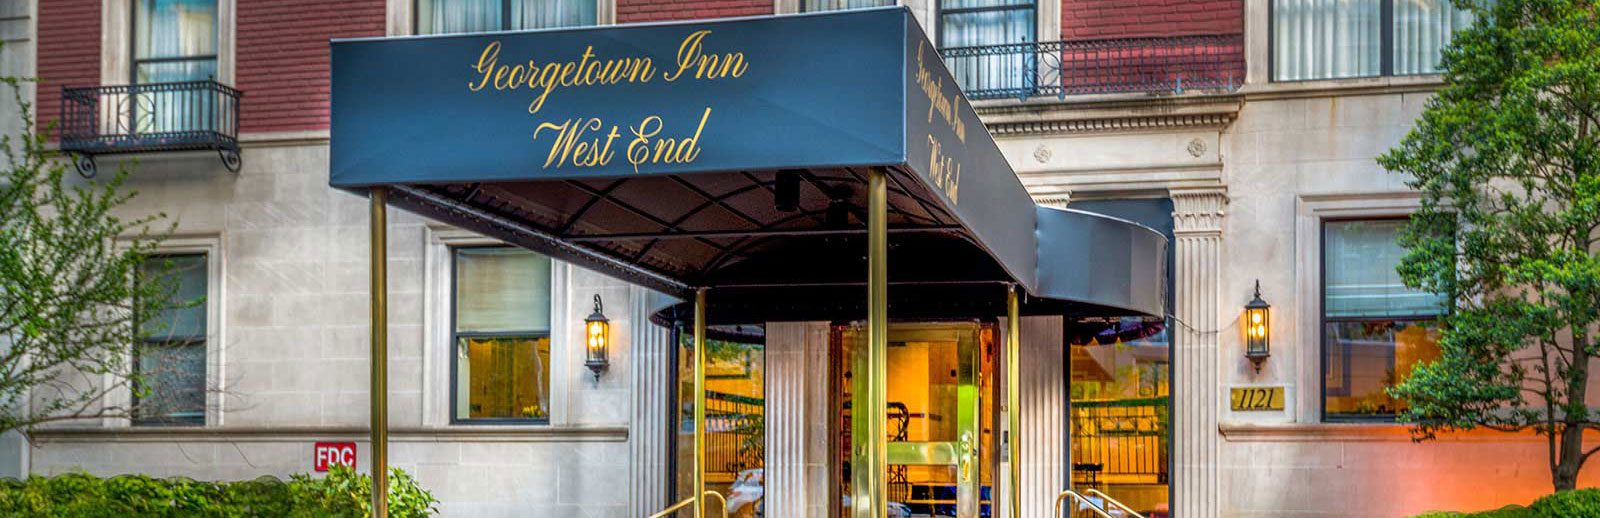 West End Georgetown Collection Washington